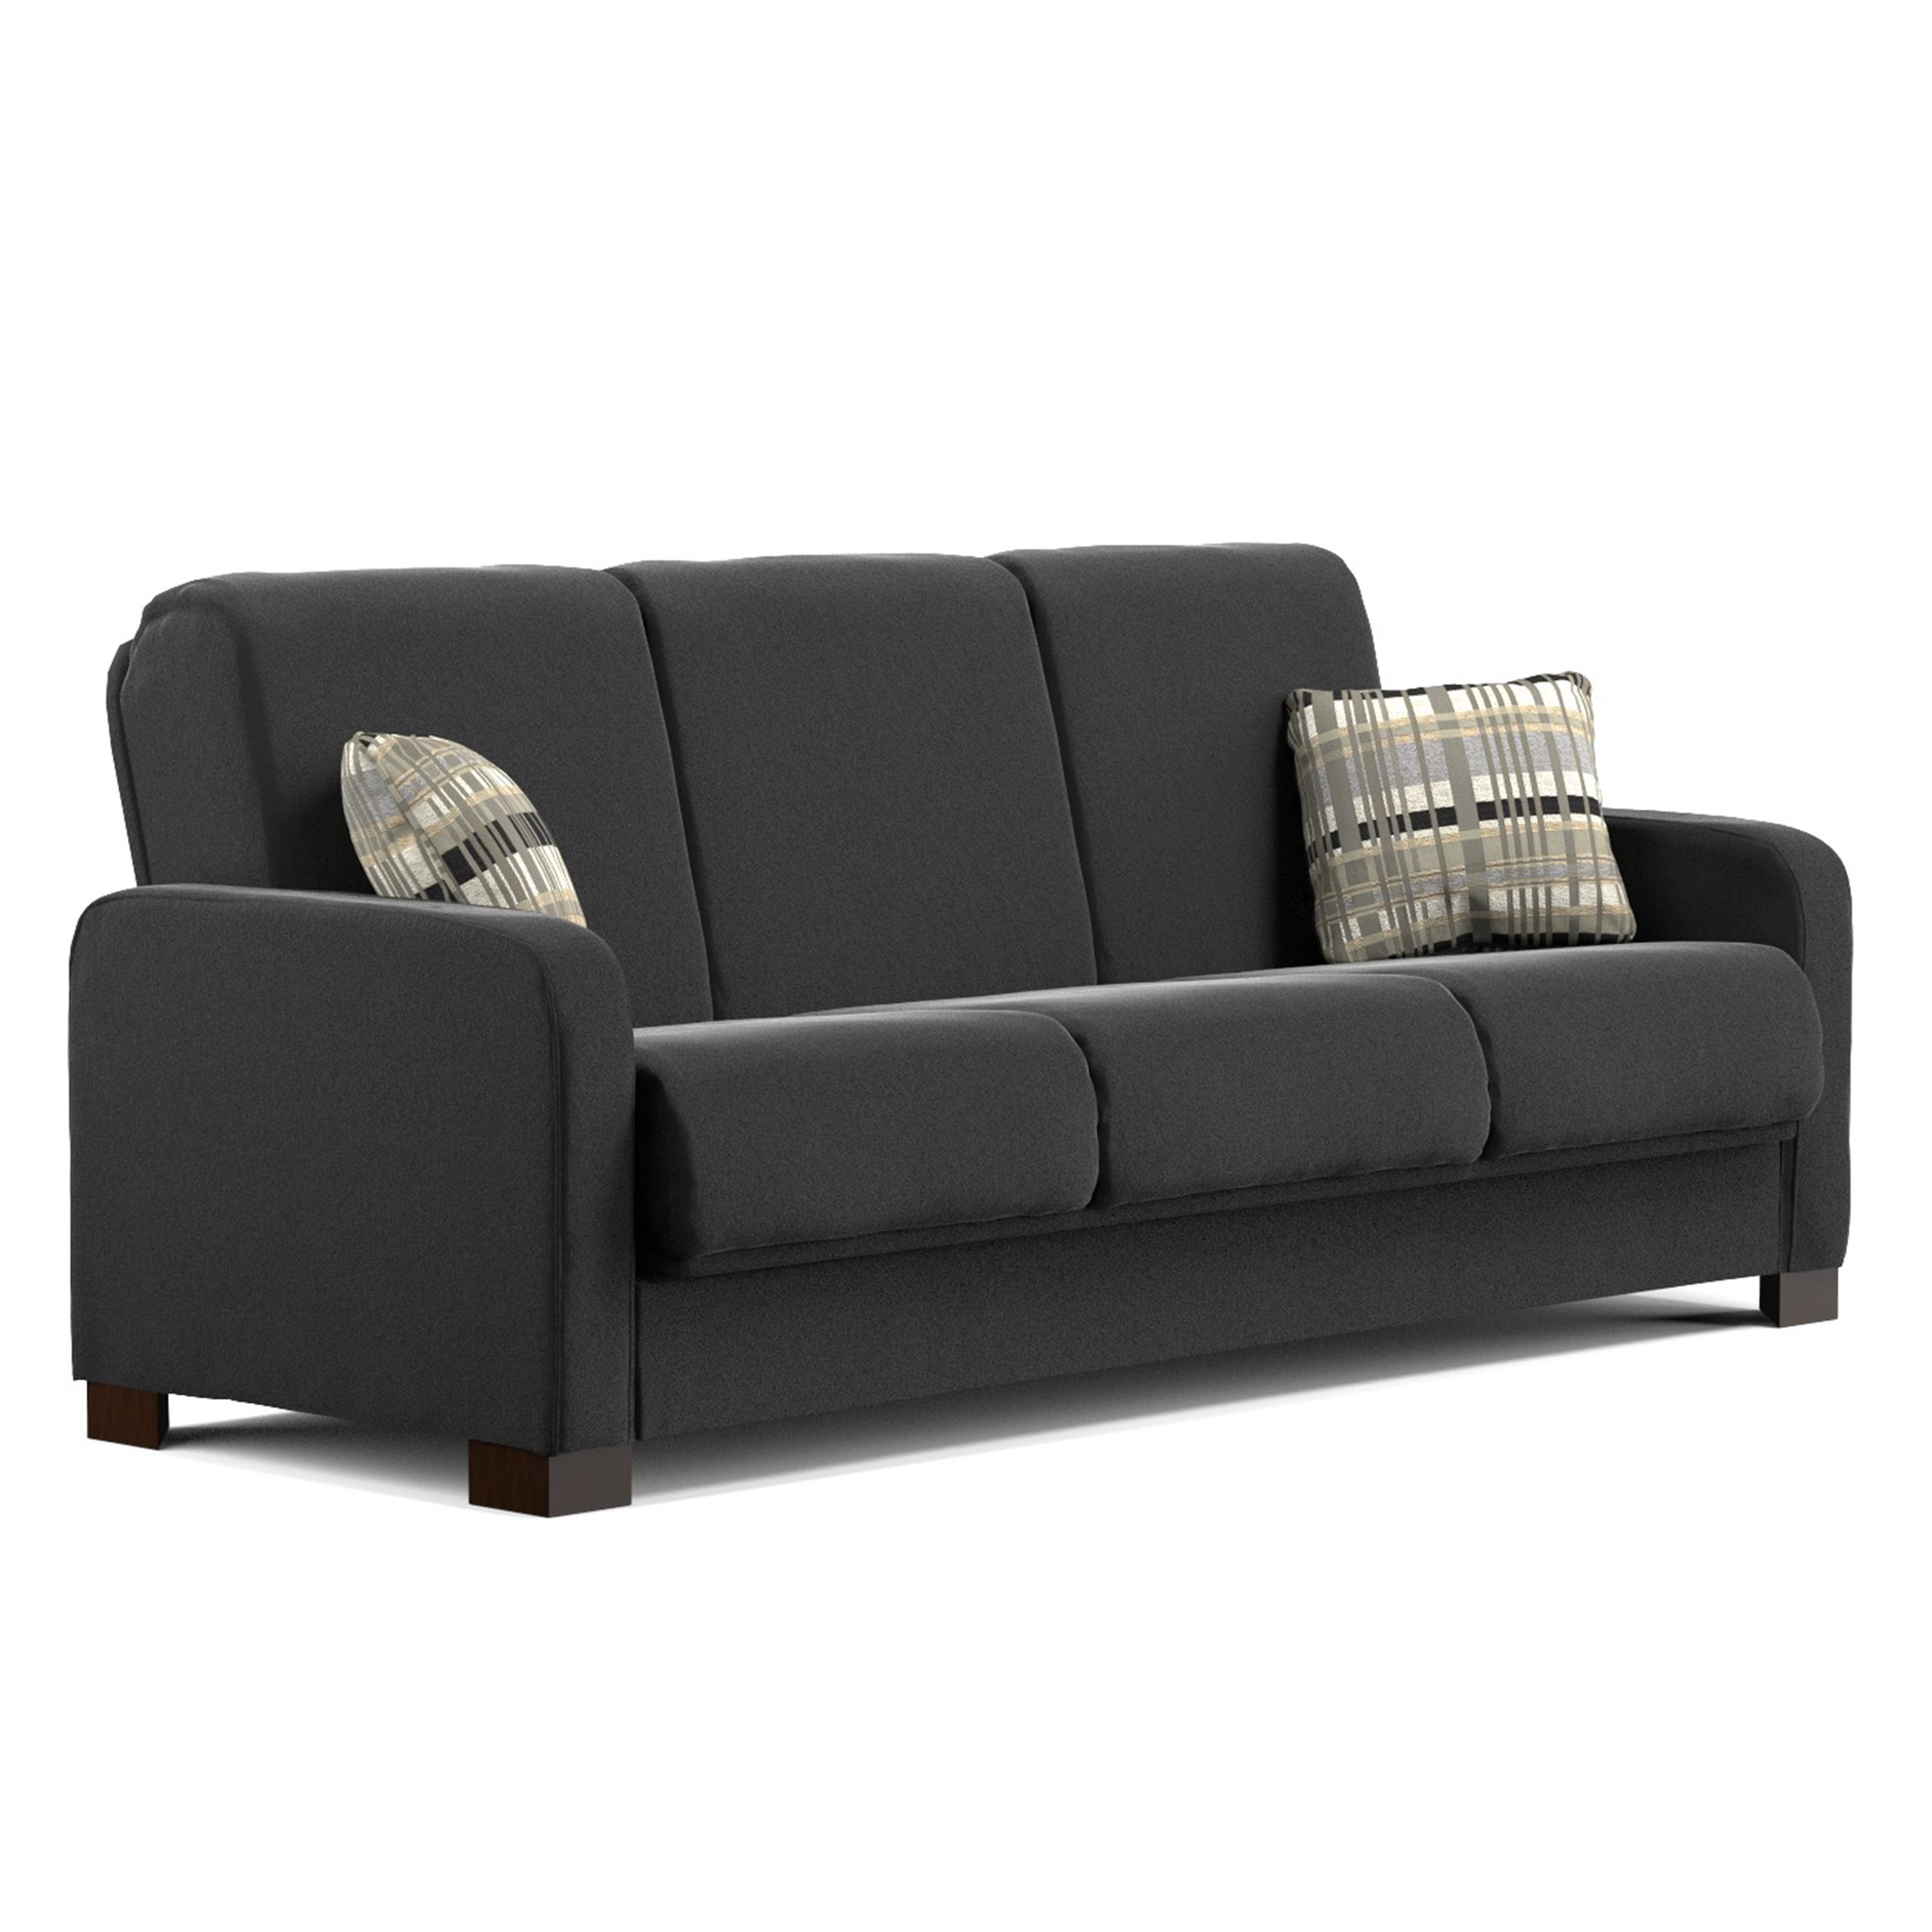 Handy Living Trace Convert A Couch Black Microfiber Futon Sofa Sleeper On Free Shipping Today Com 10333255